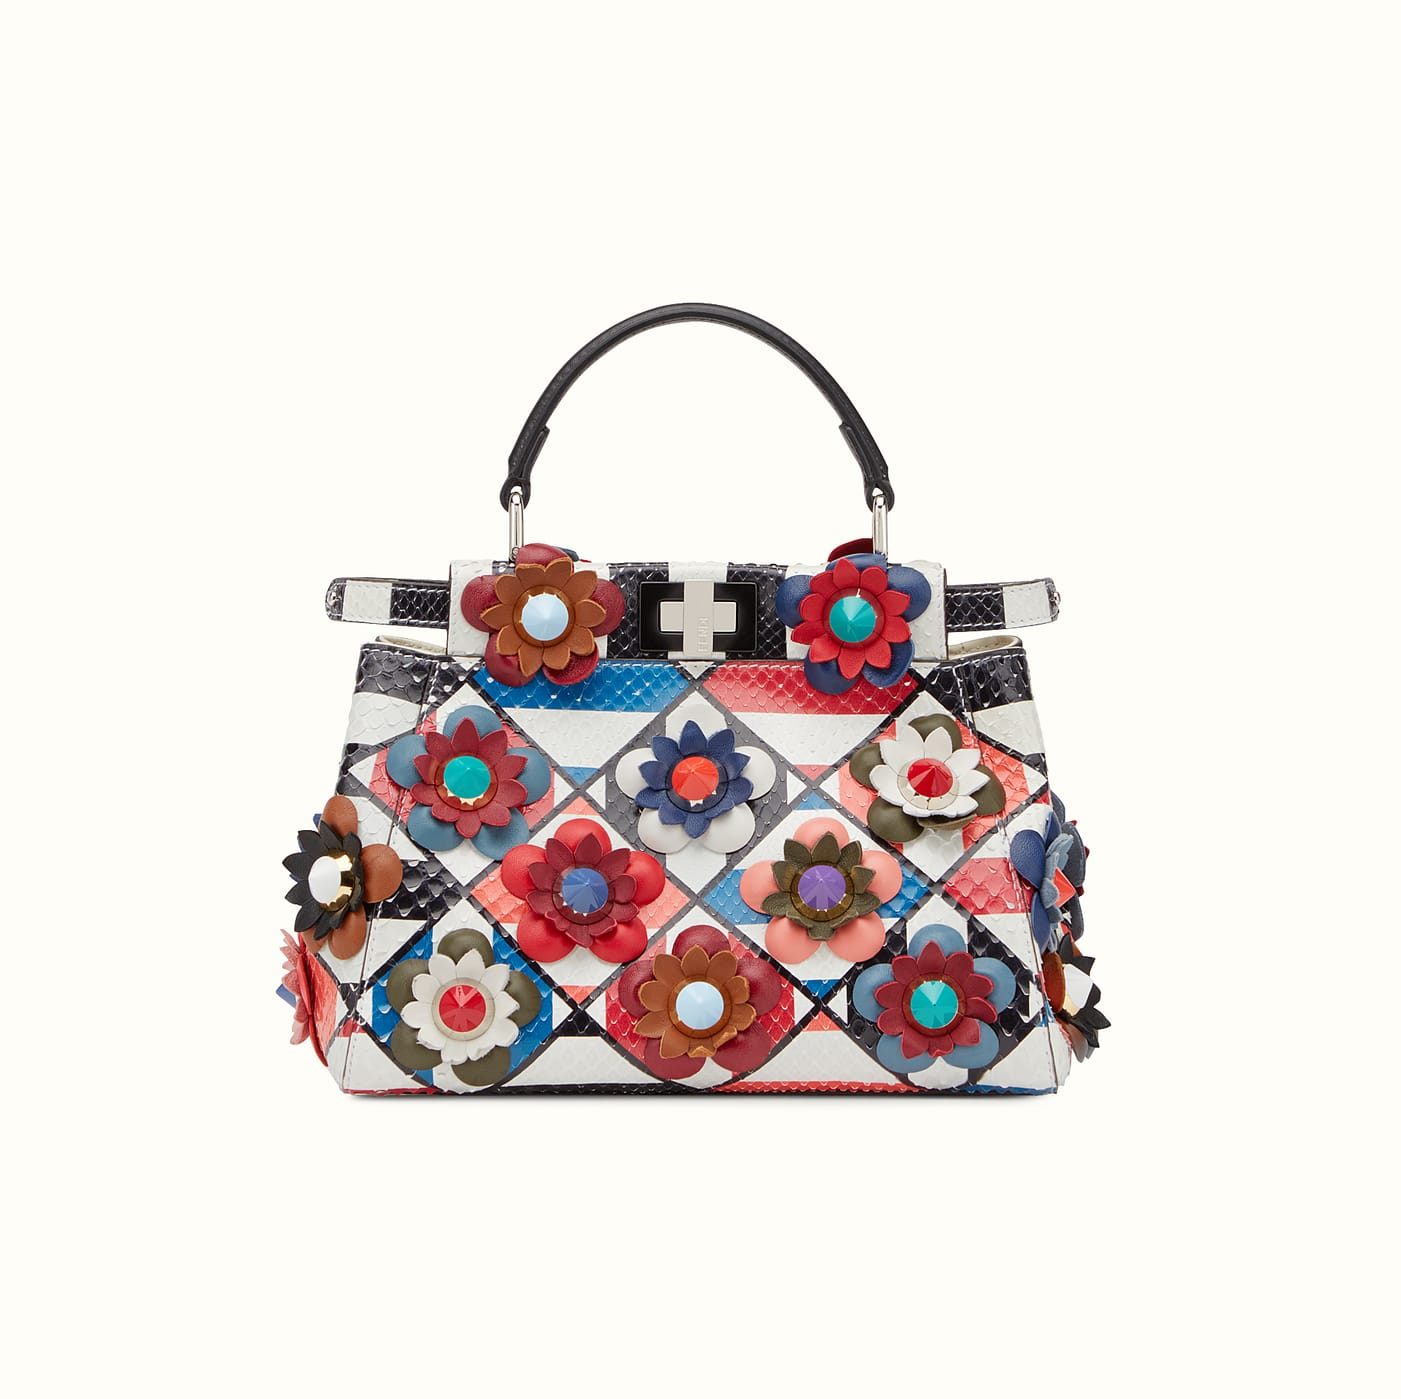 Fendi Bag Price List Reference Guide – Spotted Fashion